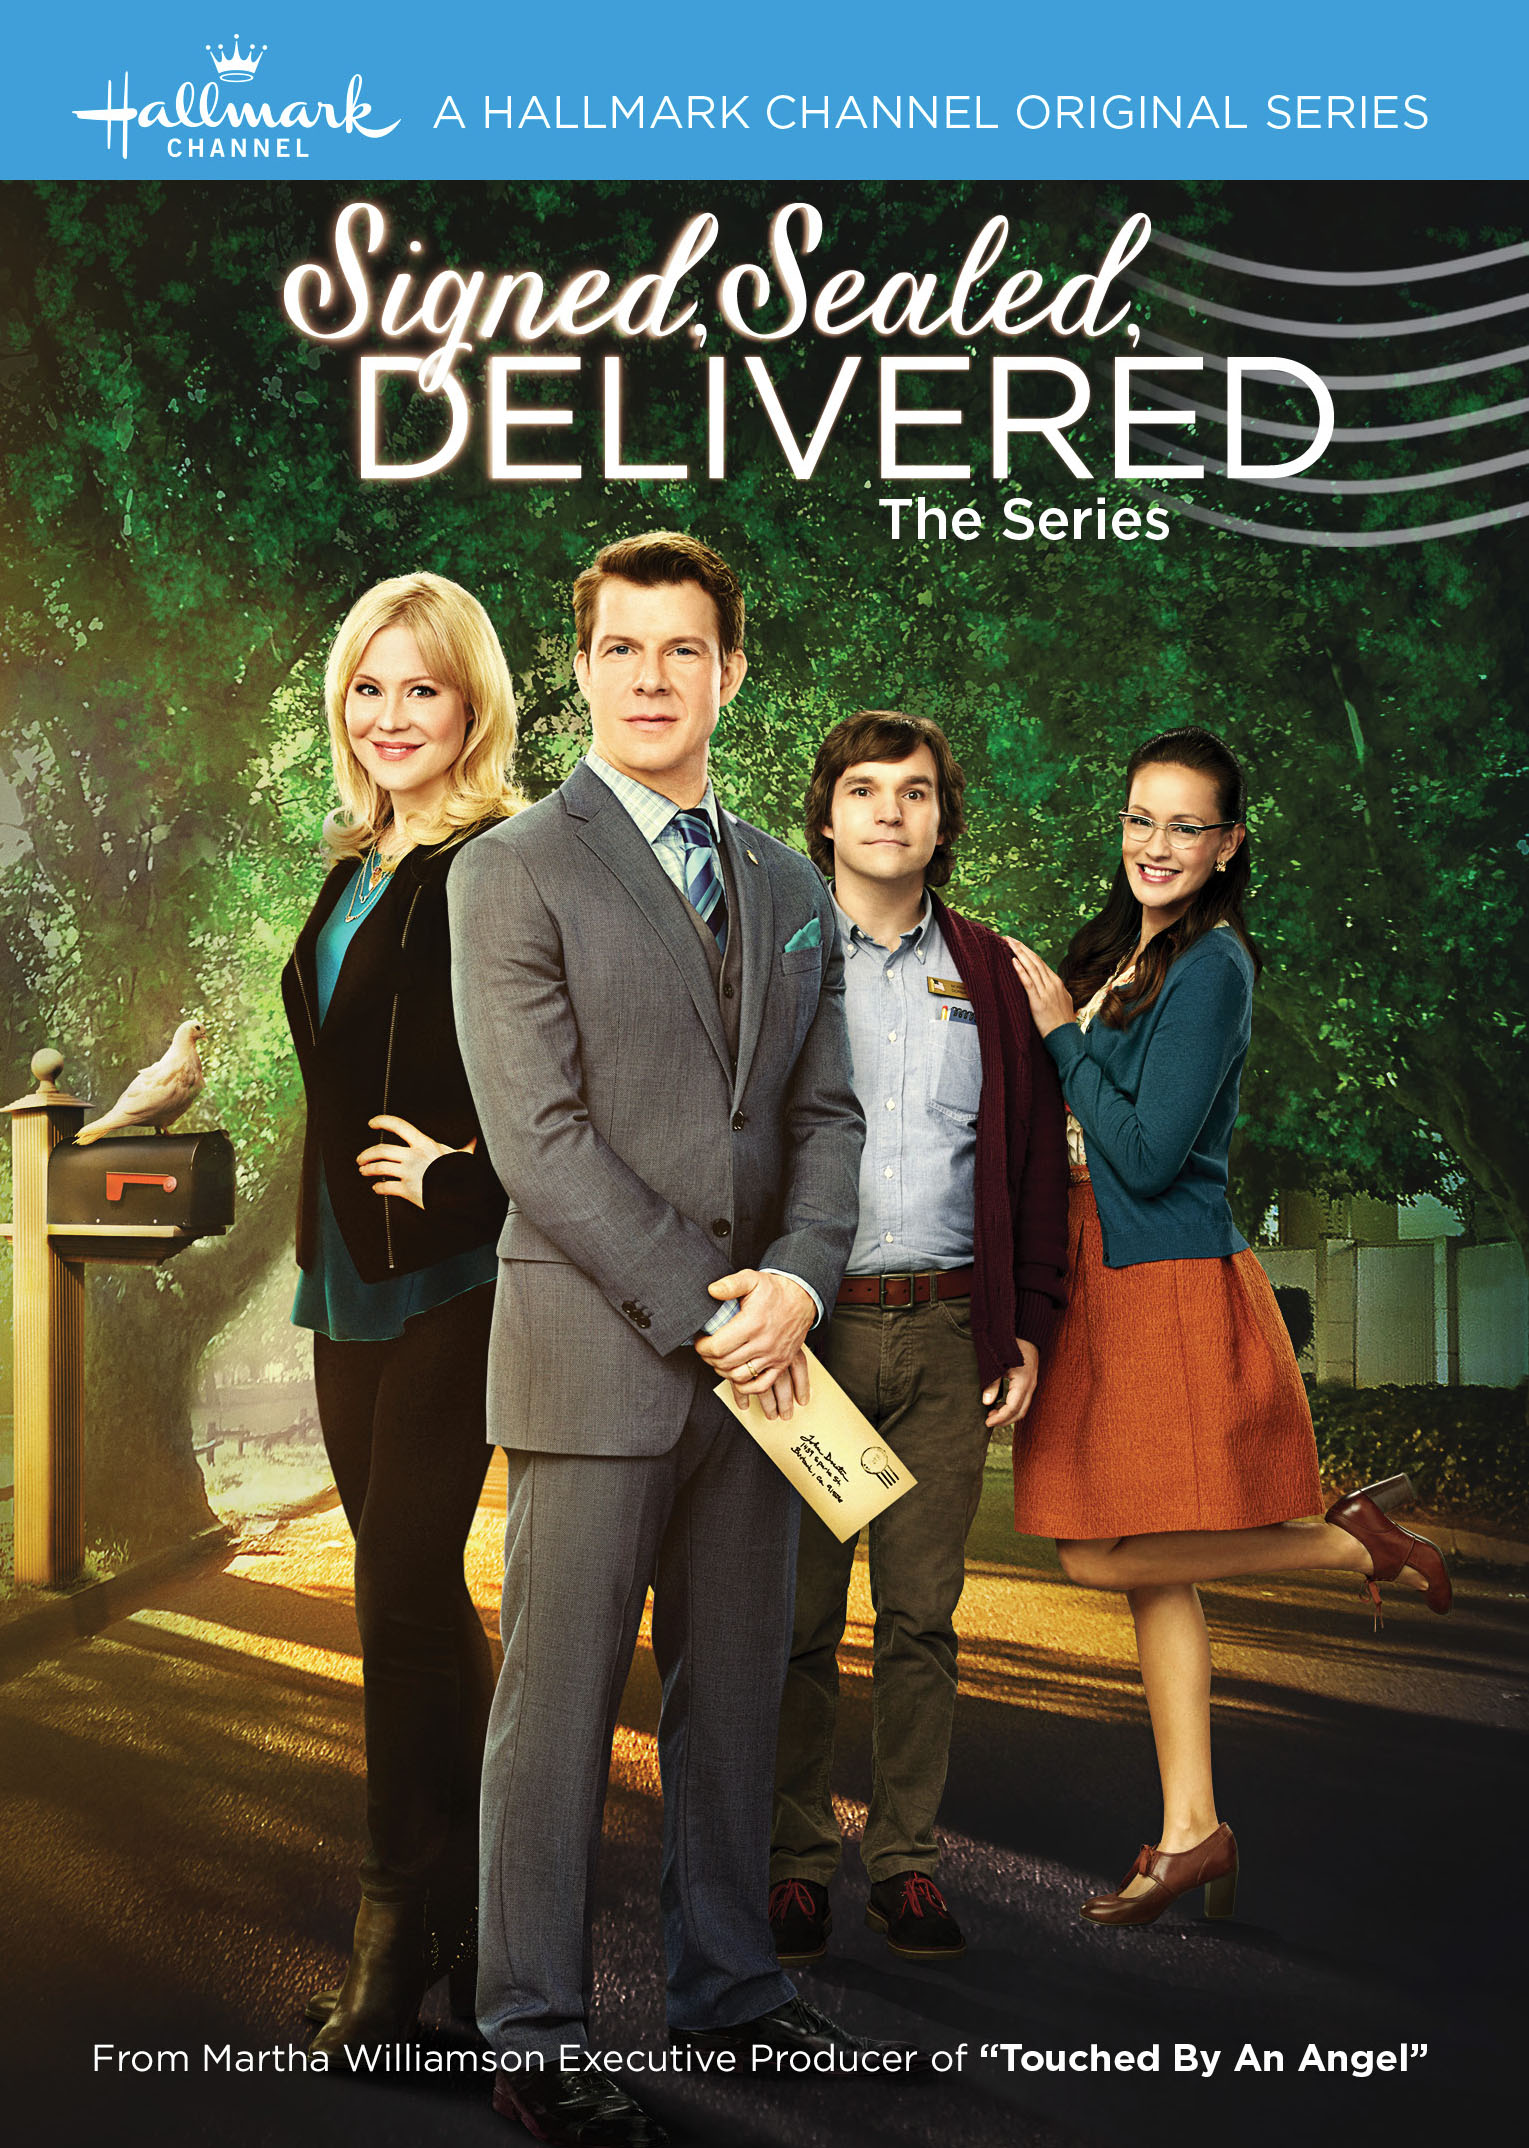 Signed, Sealed, Delivered: la locandina della serie